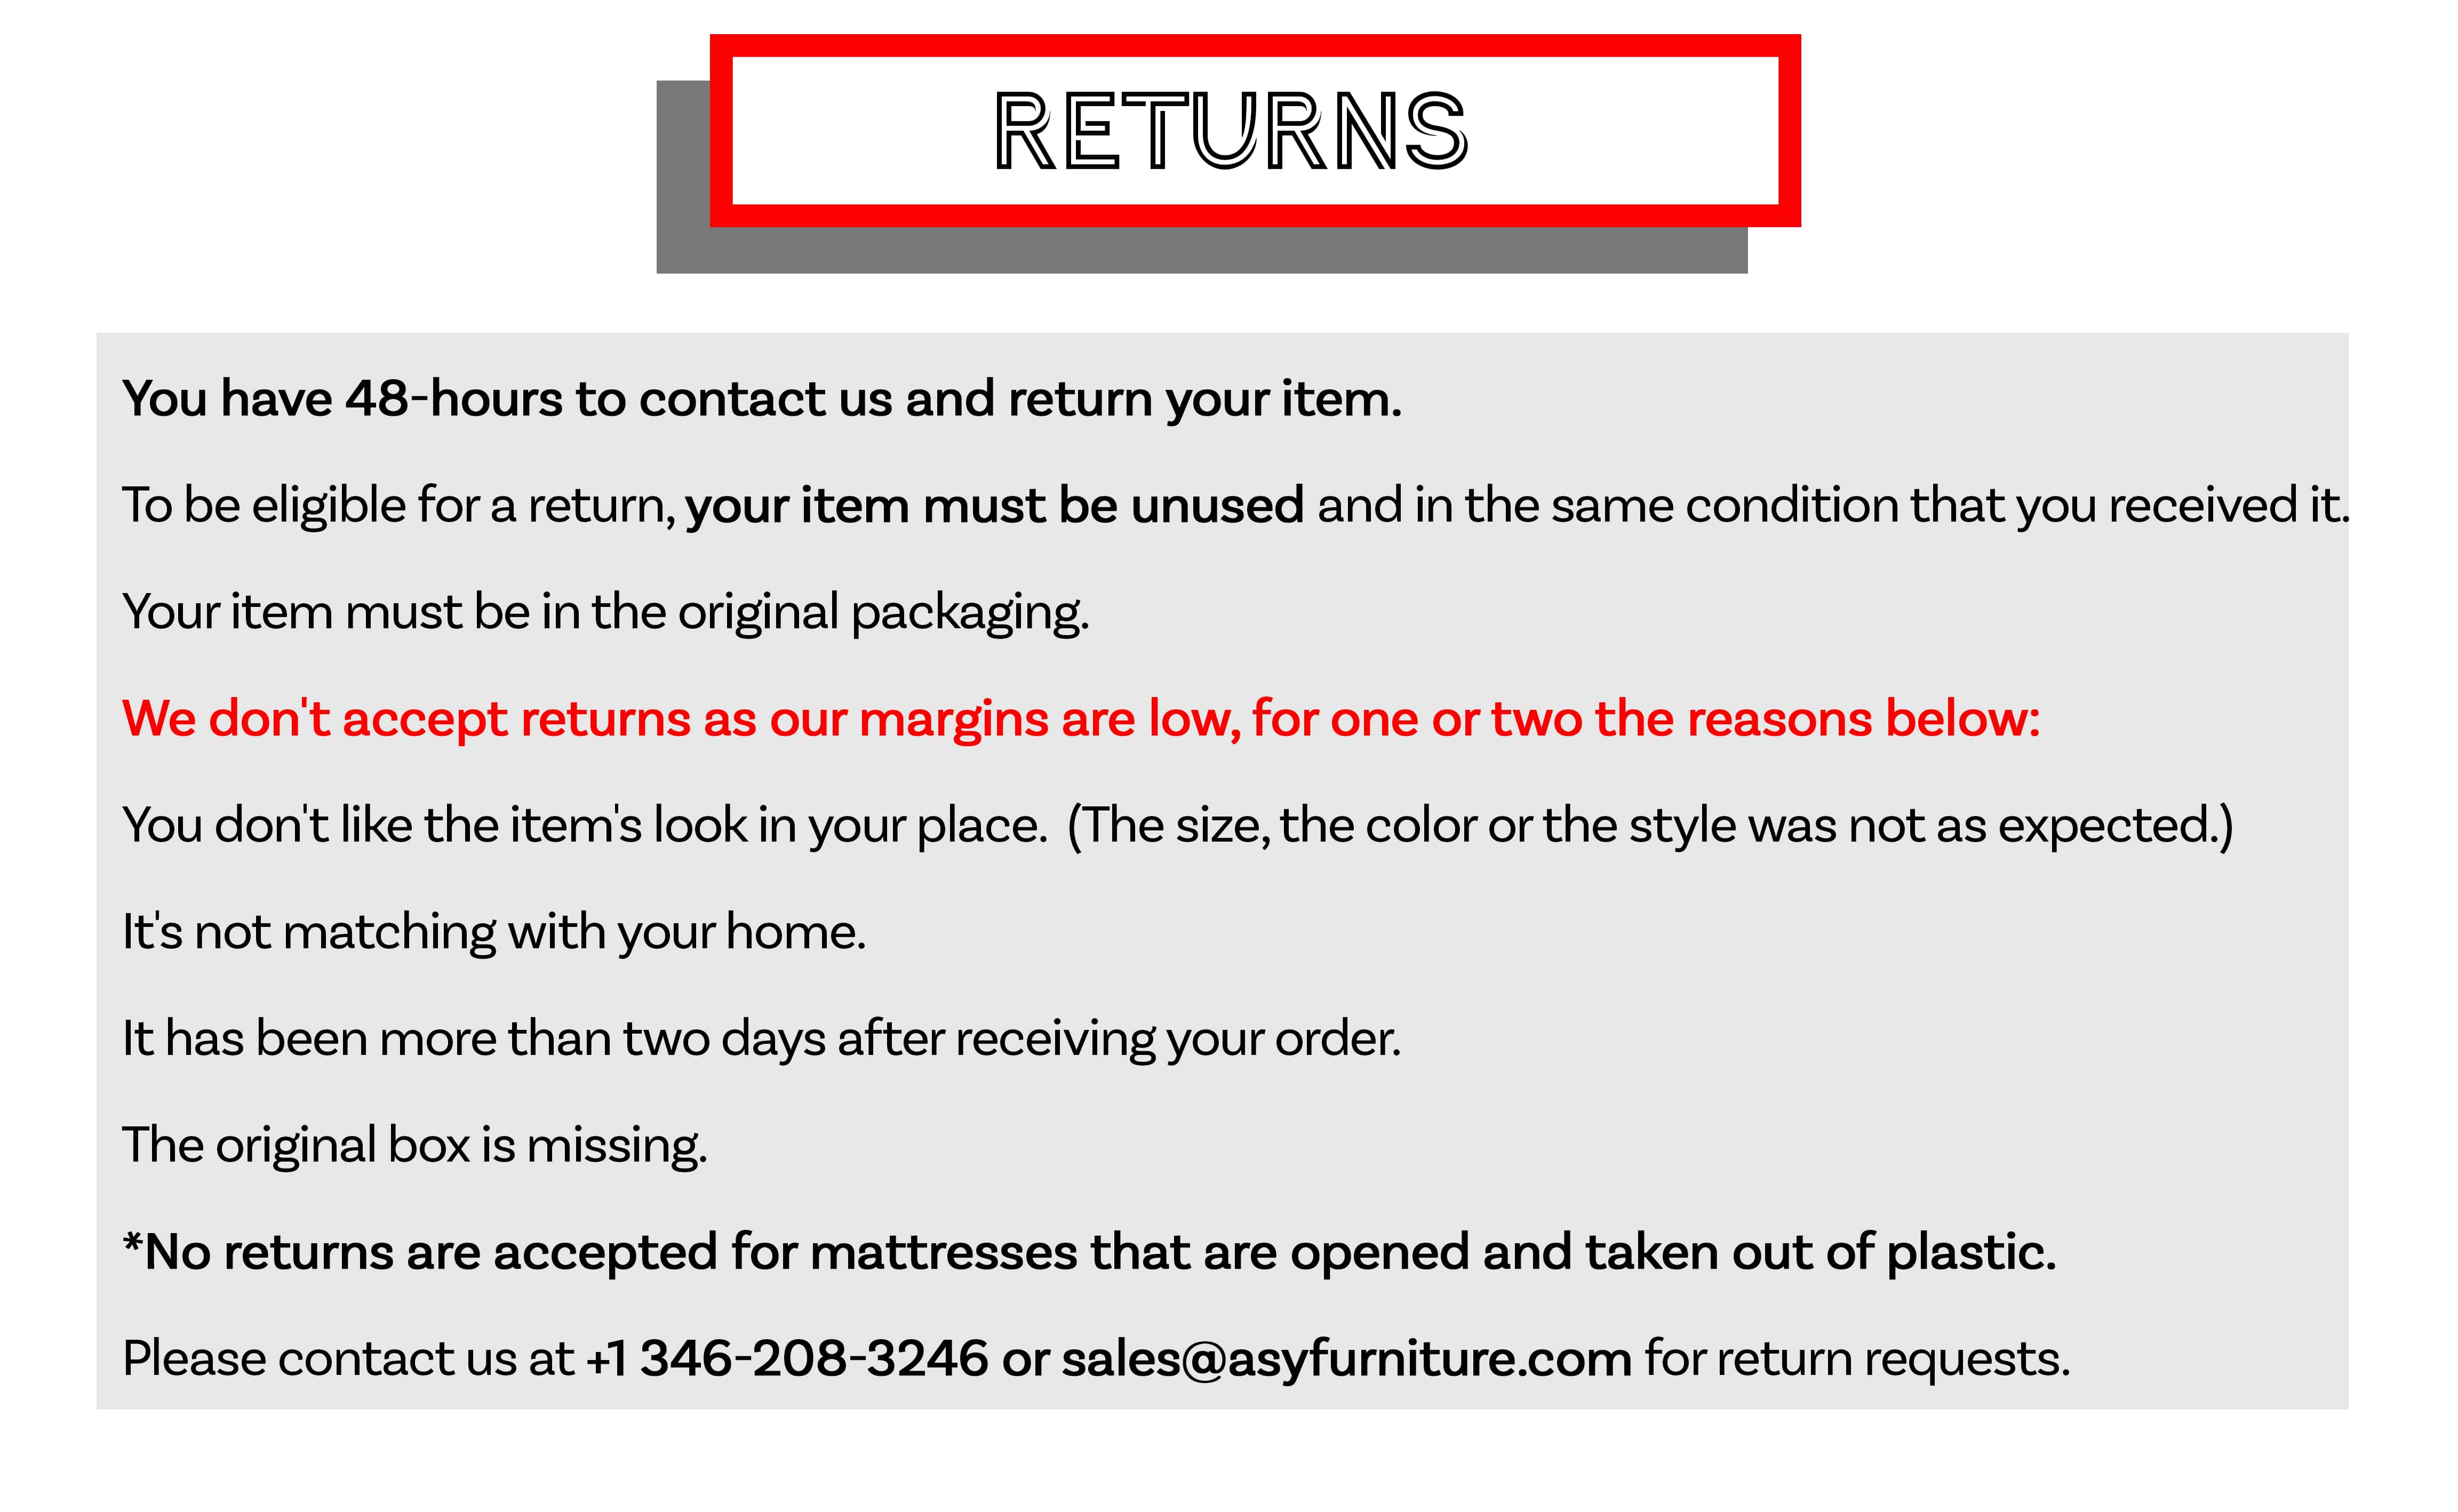 Free Furniture Returns ASY Furniture 100% Satisfaction